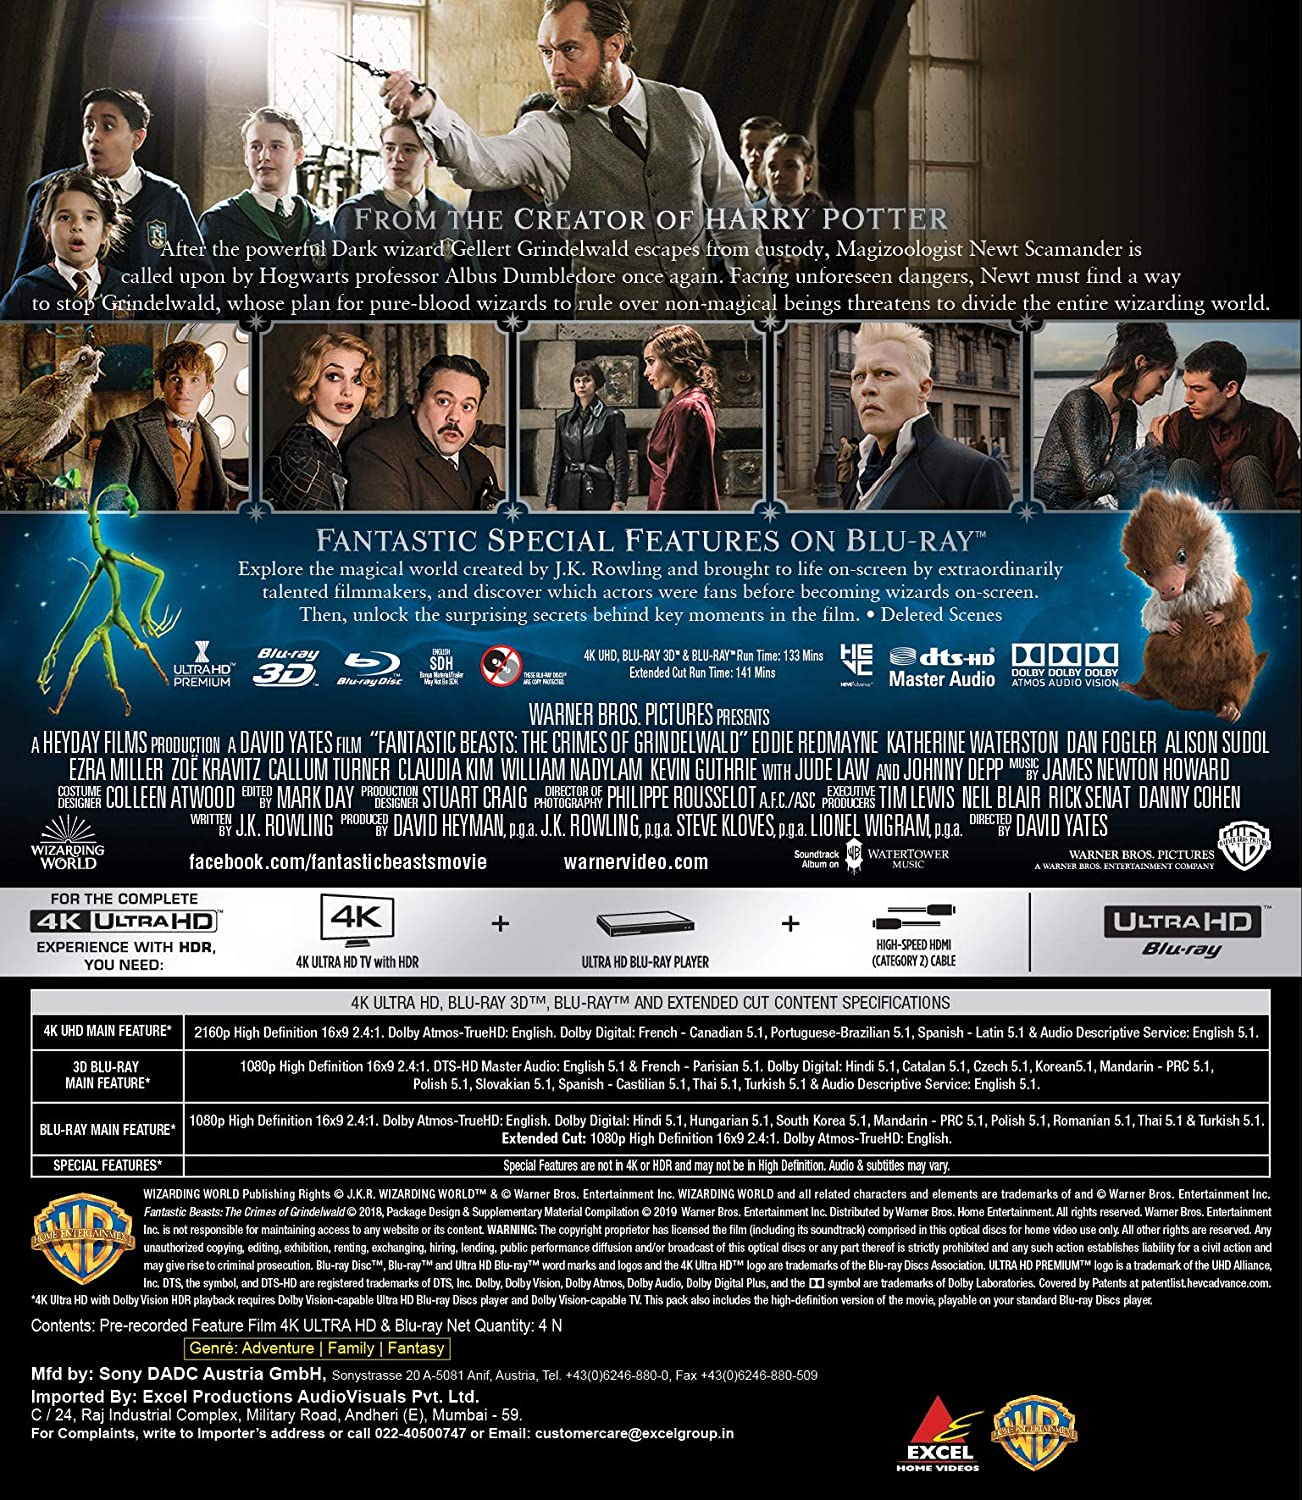 Amazon in: Buy Fantastic Beasts: The Crimes of Grindelwald (4K UHD +